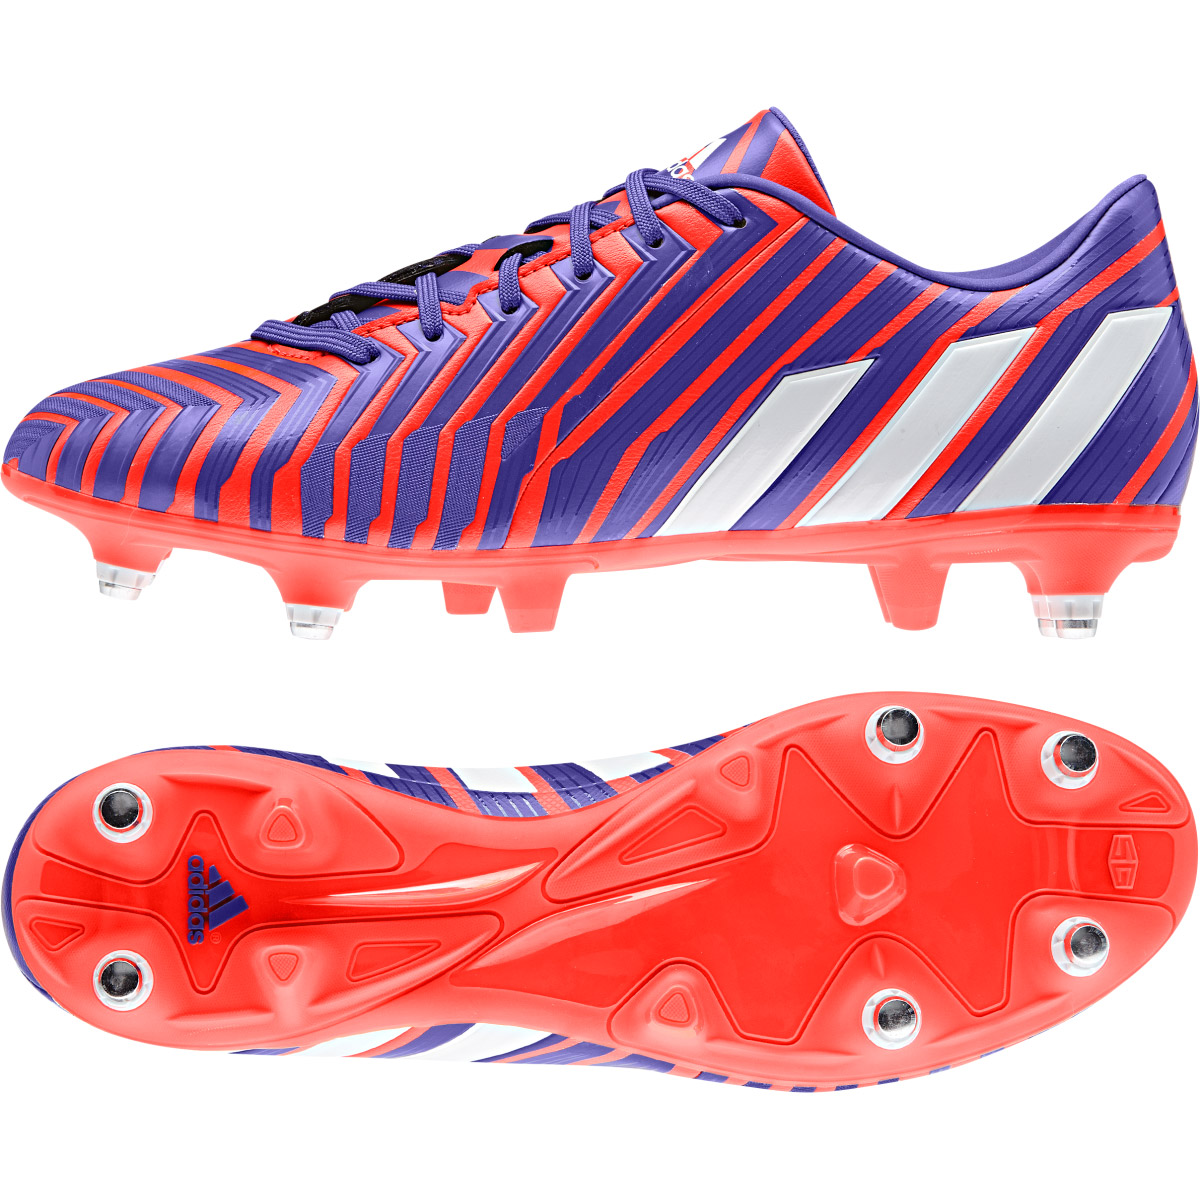 Adidas Predator Absolado Instinct Soft Ground Football Boots Red